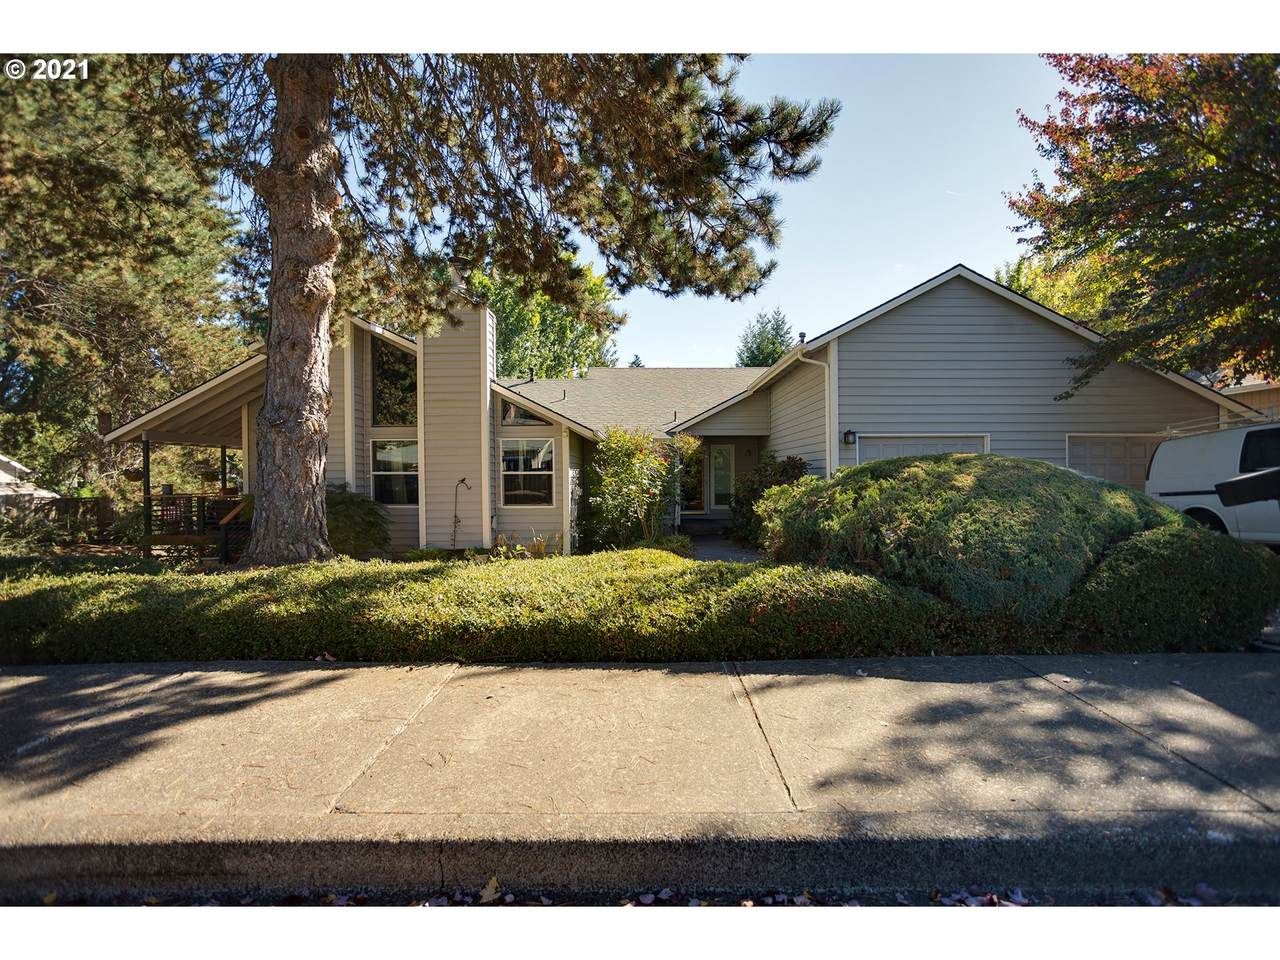 6330 152ND Ave - Photo 1